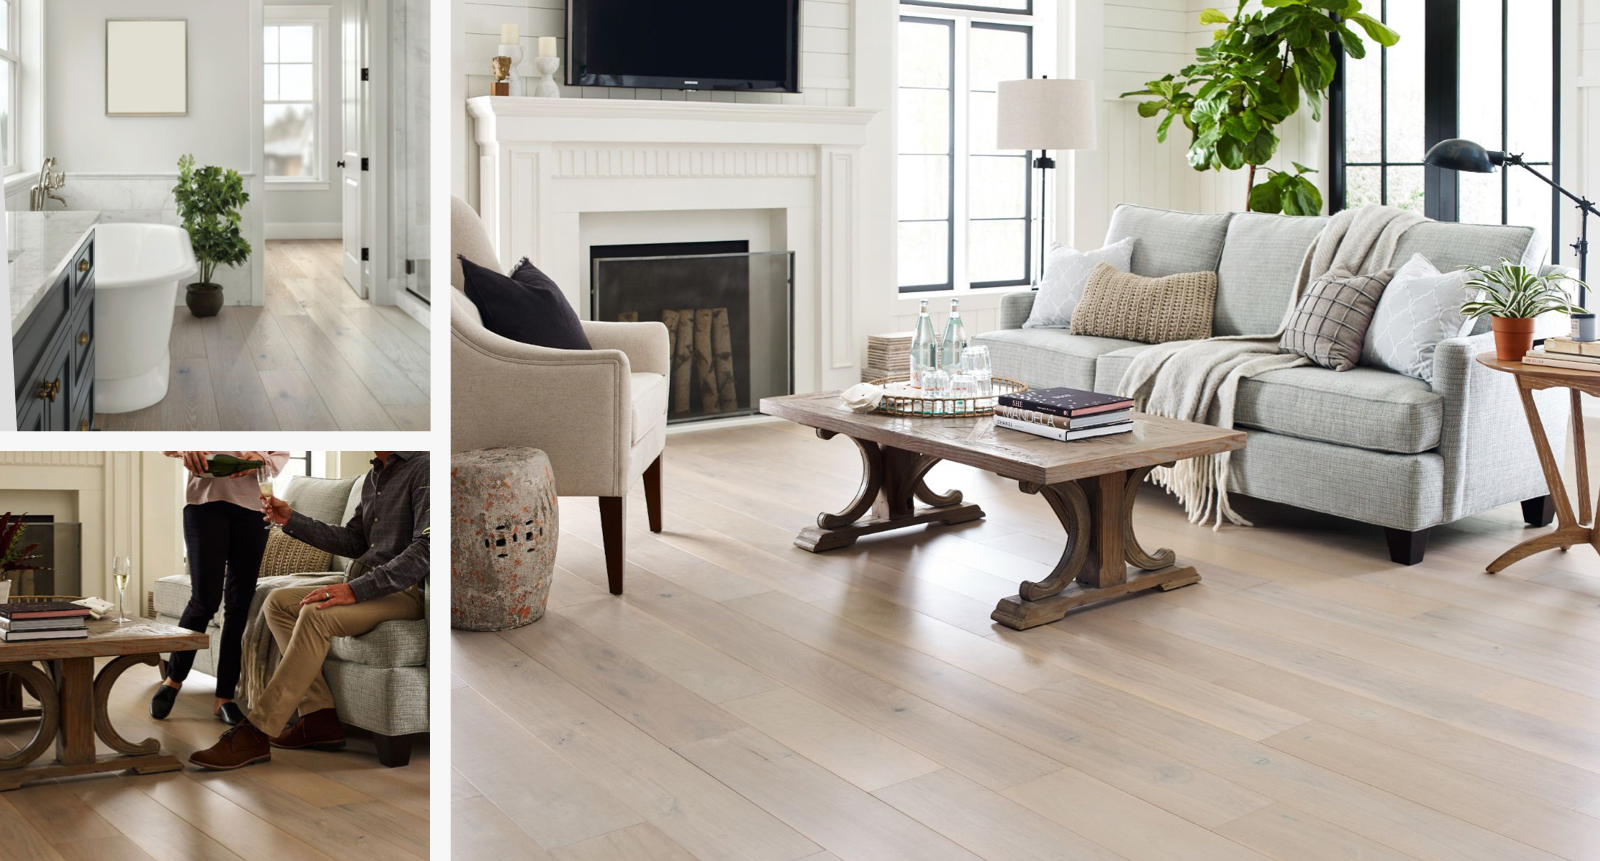 Floorte waterproof hardwood flooring for your home | Shelley Carpets